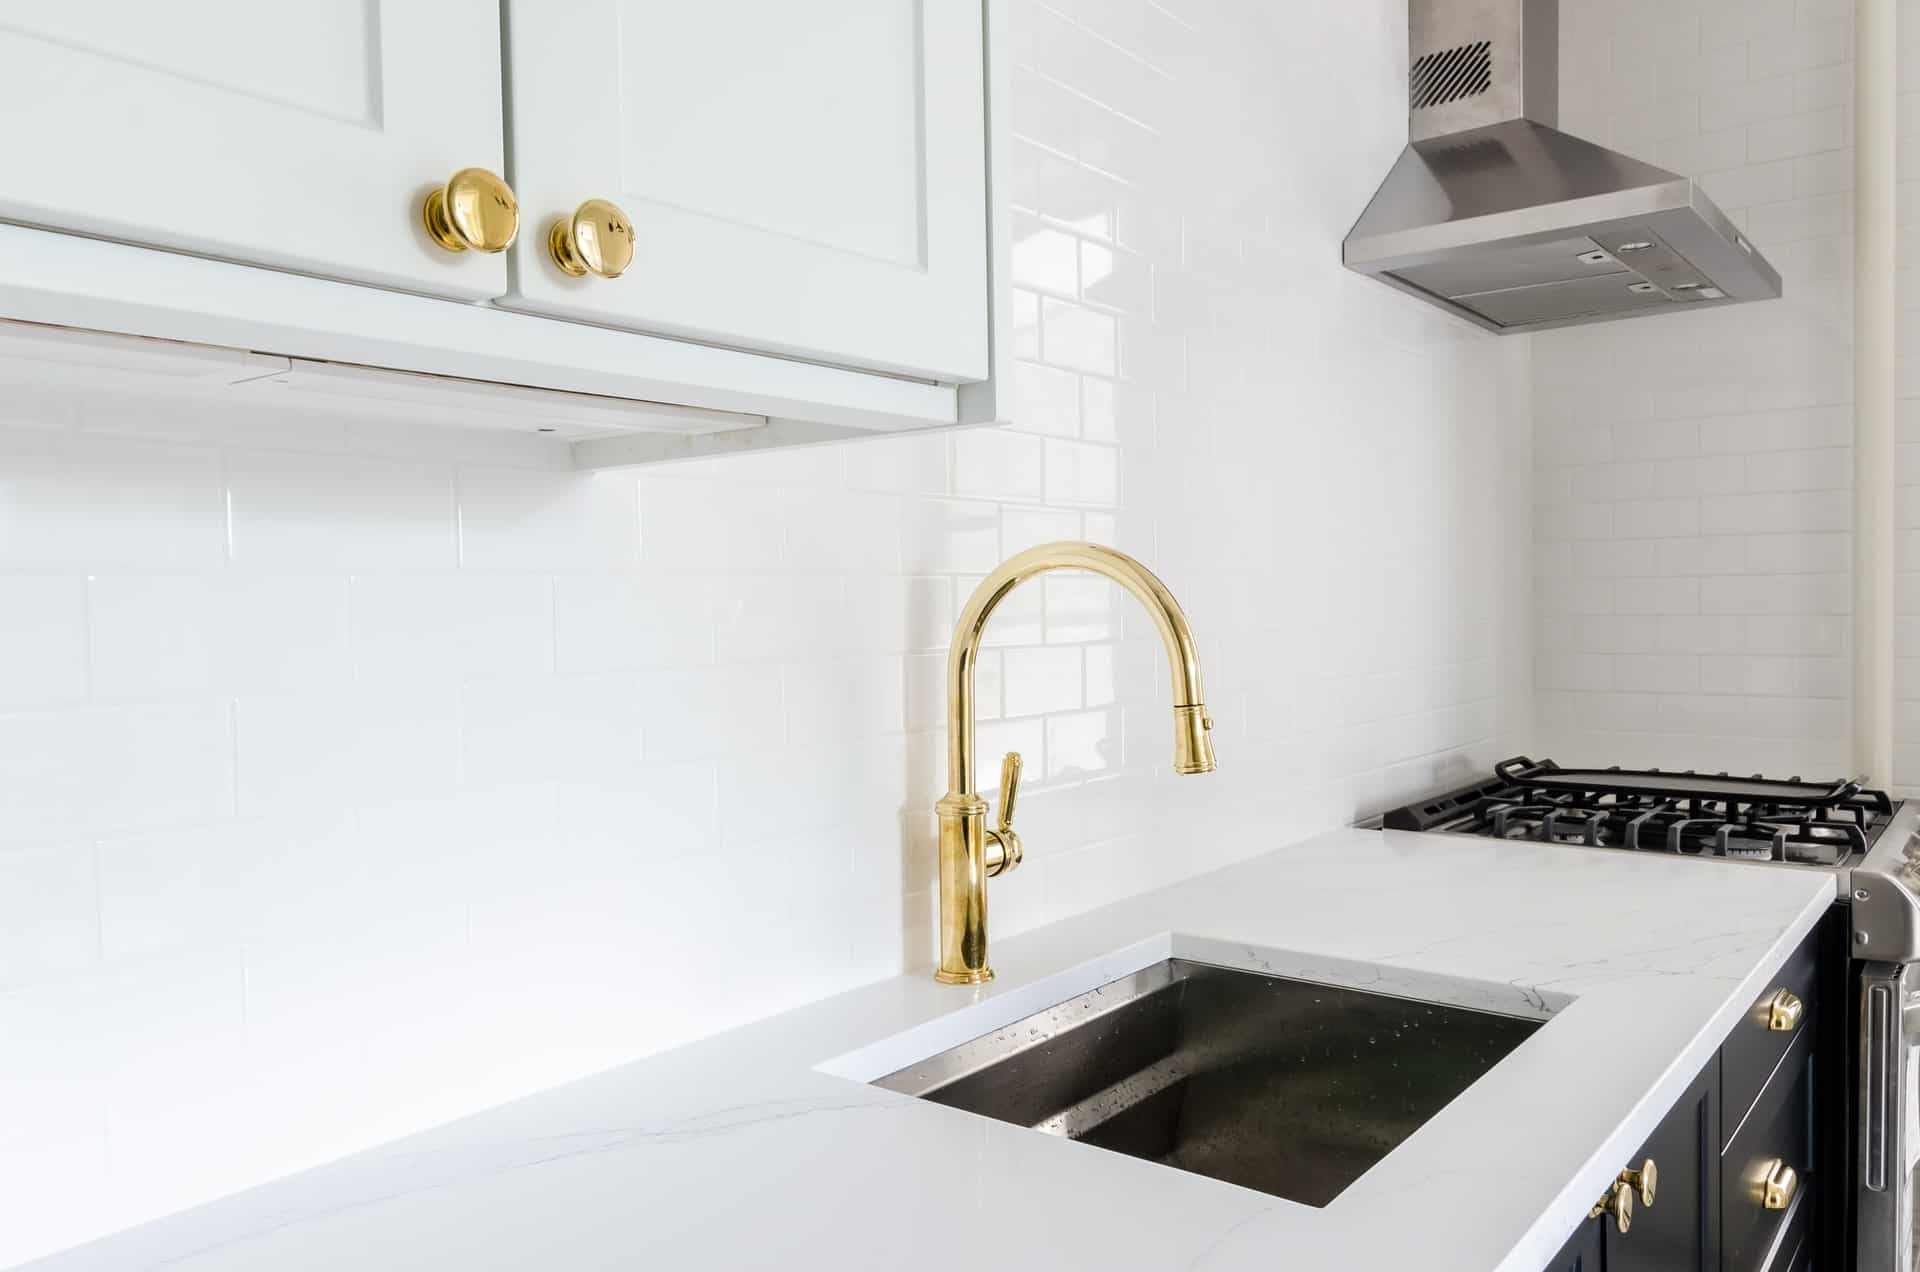 Gold Kraus faucet in a white kitchen